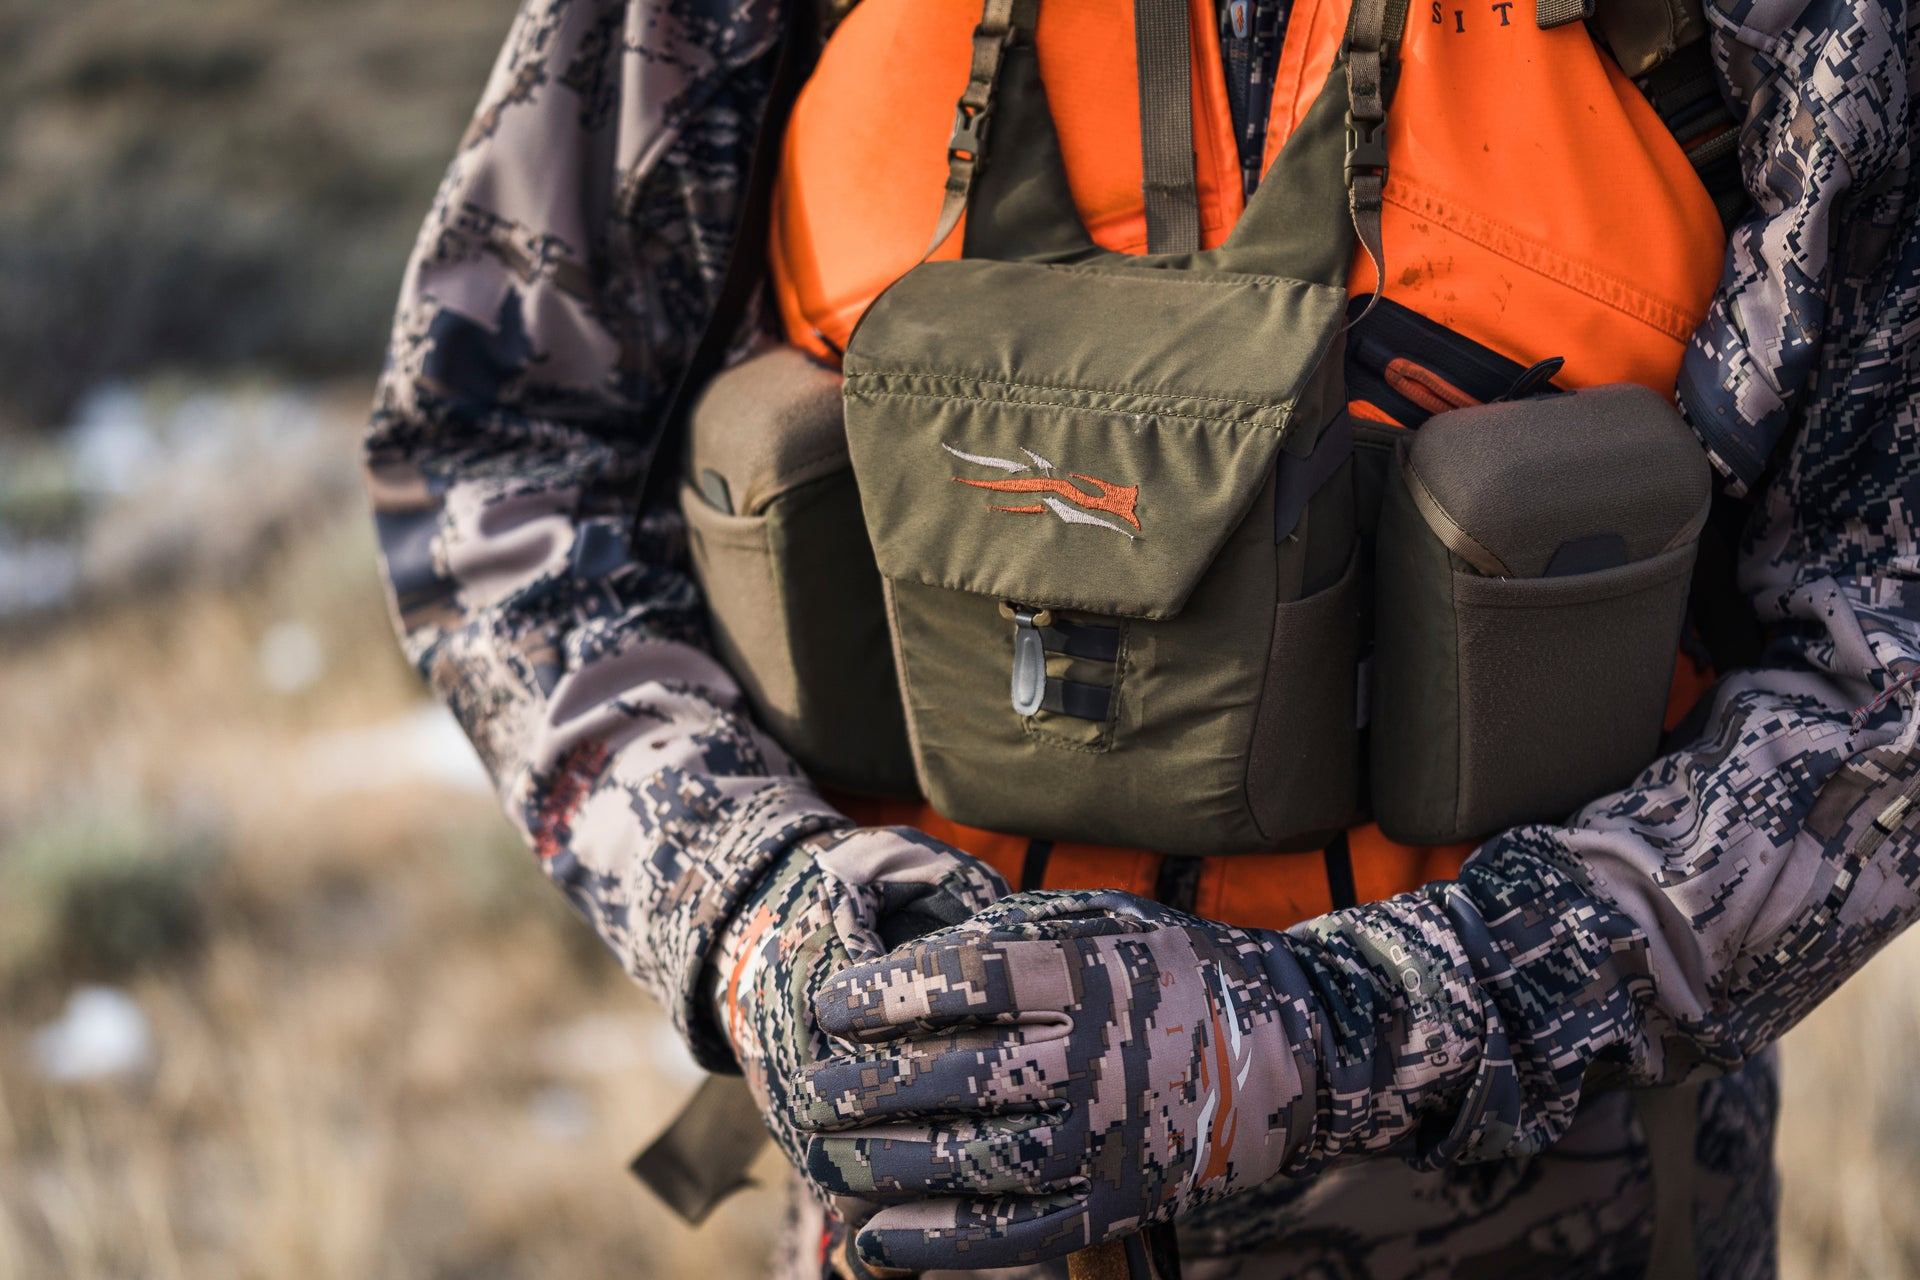 Sitka Gear - Man standing holding hands out front of him wearing the Jetstream Jacket